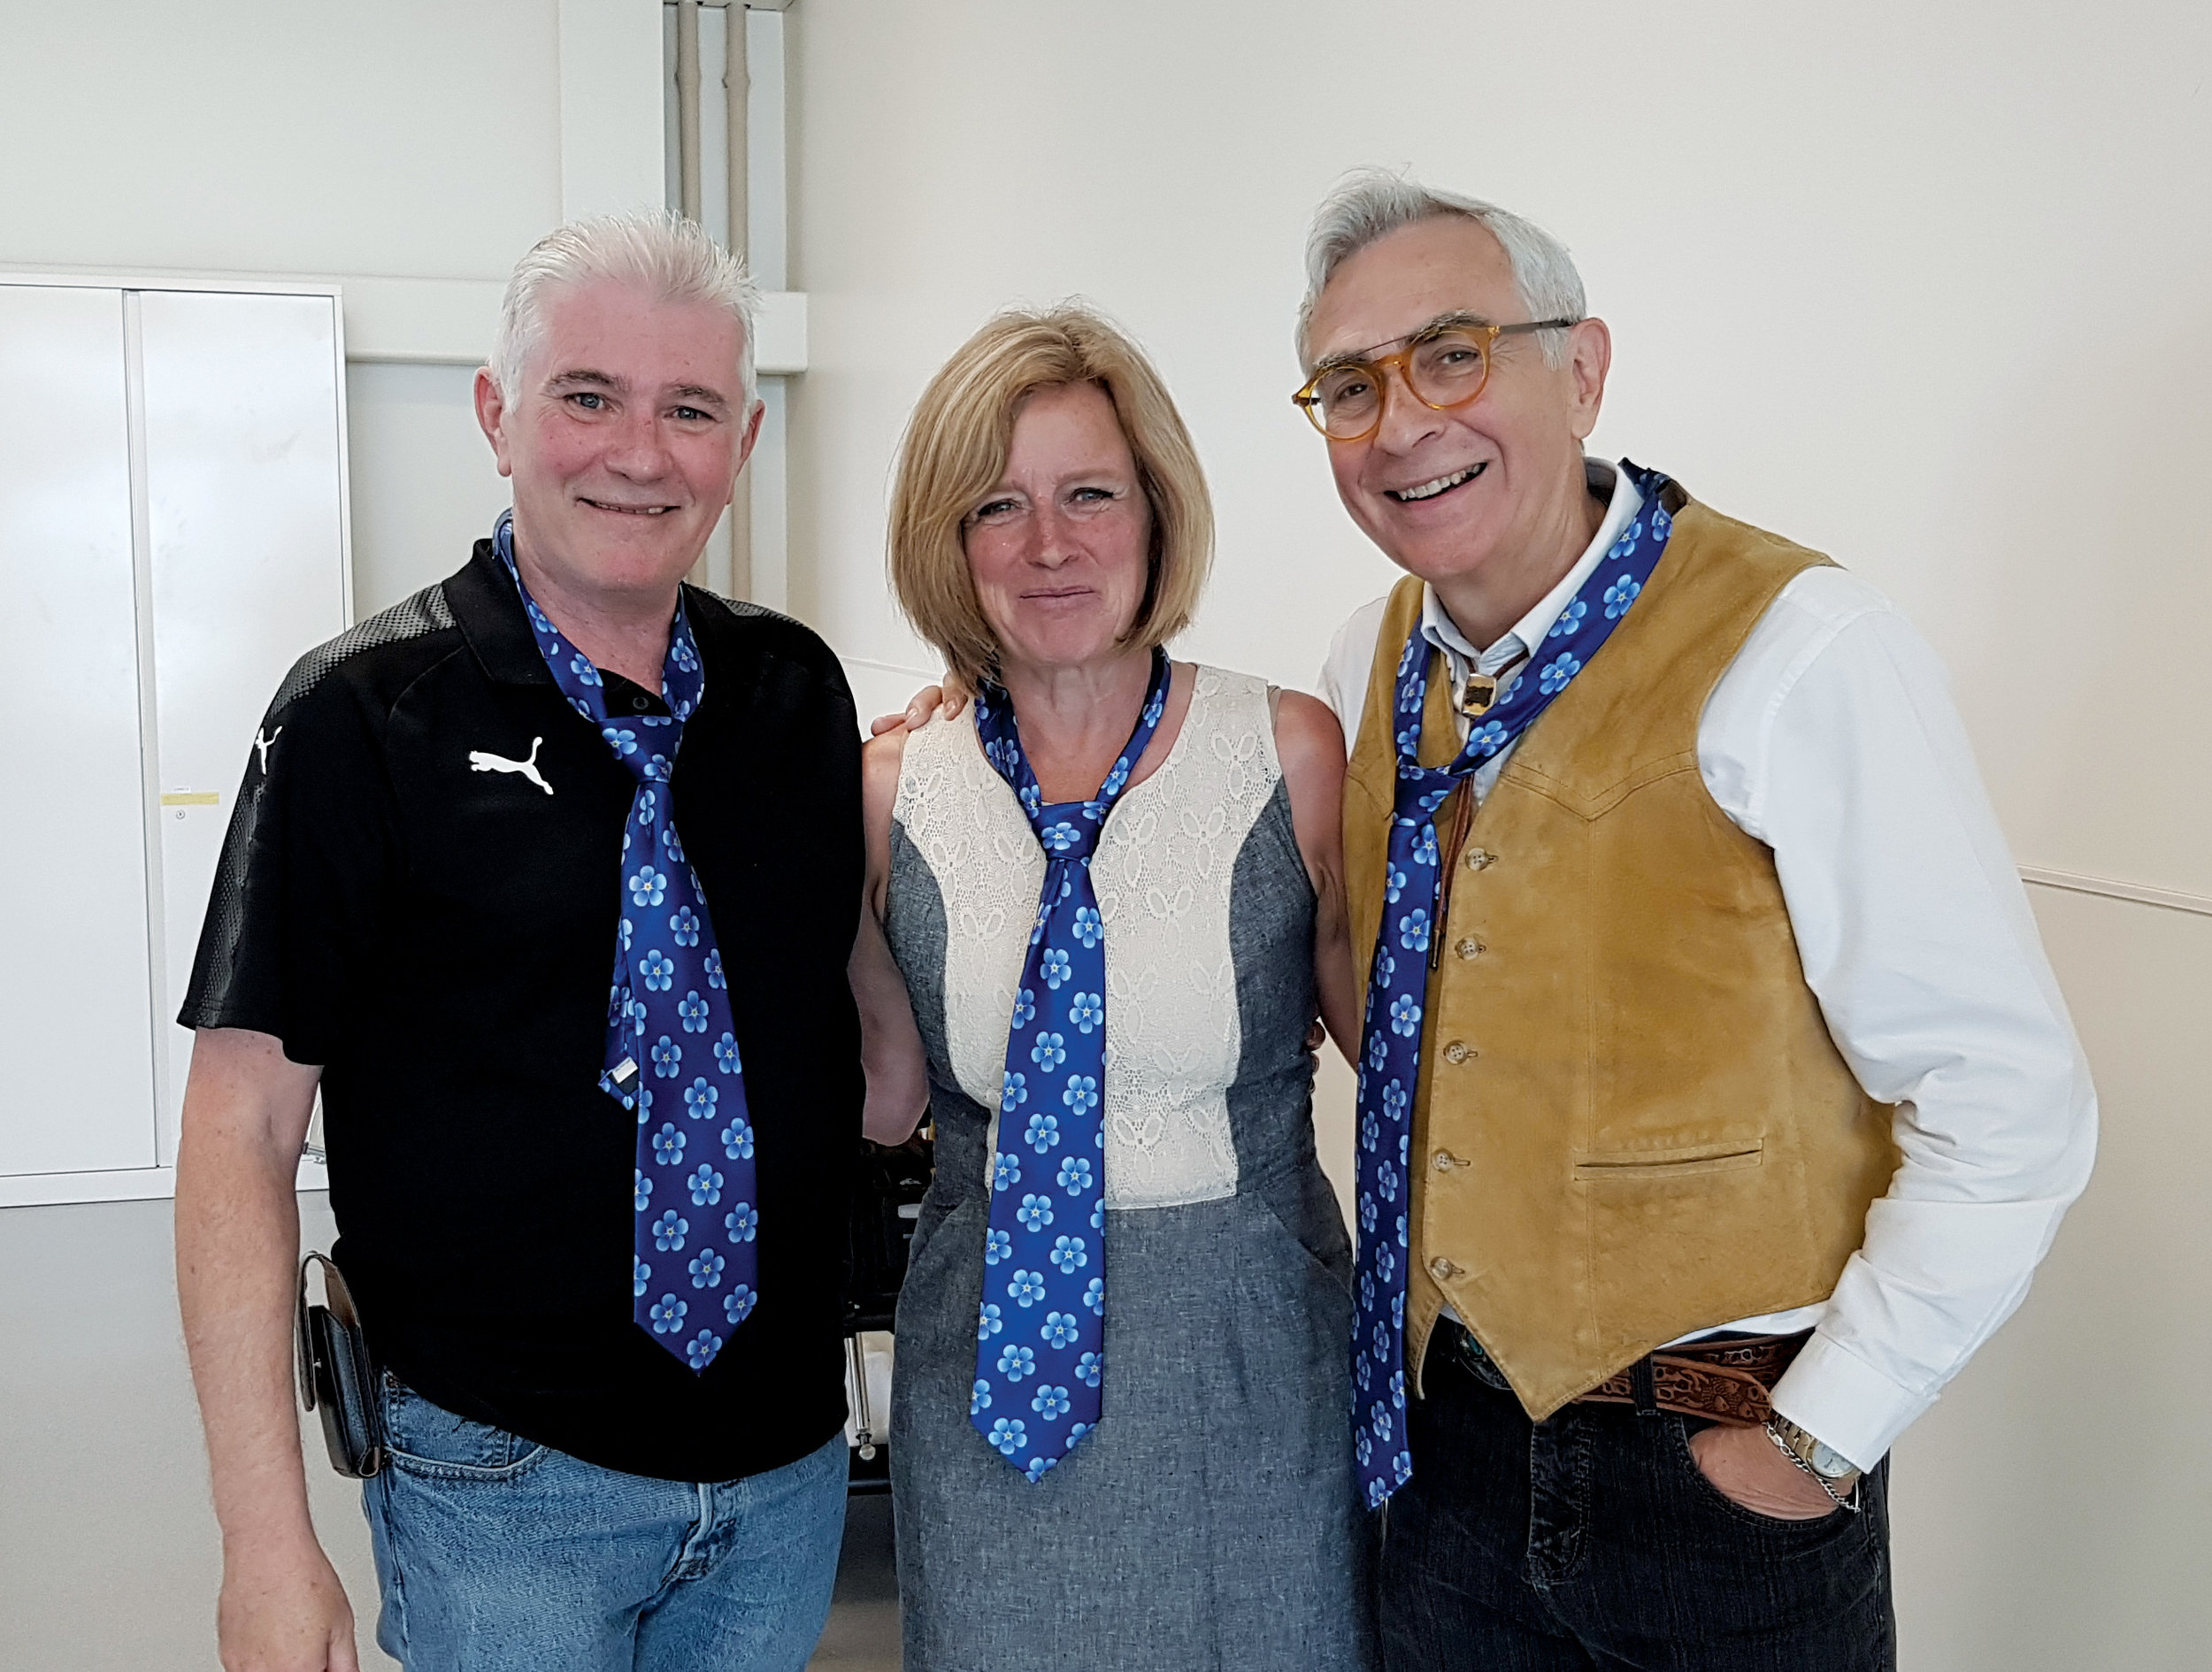 From left: Roger Marple with premier Rachel Notley and MLA Bob Wanner. Photo courtesy of Roger Marple.